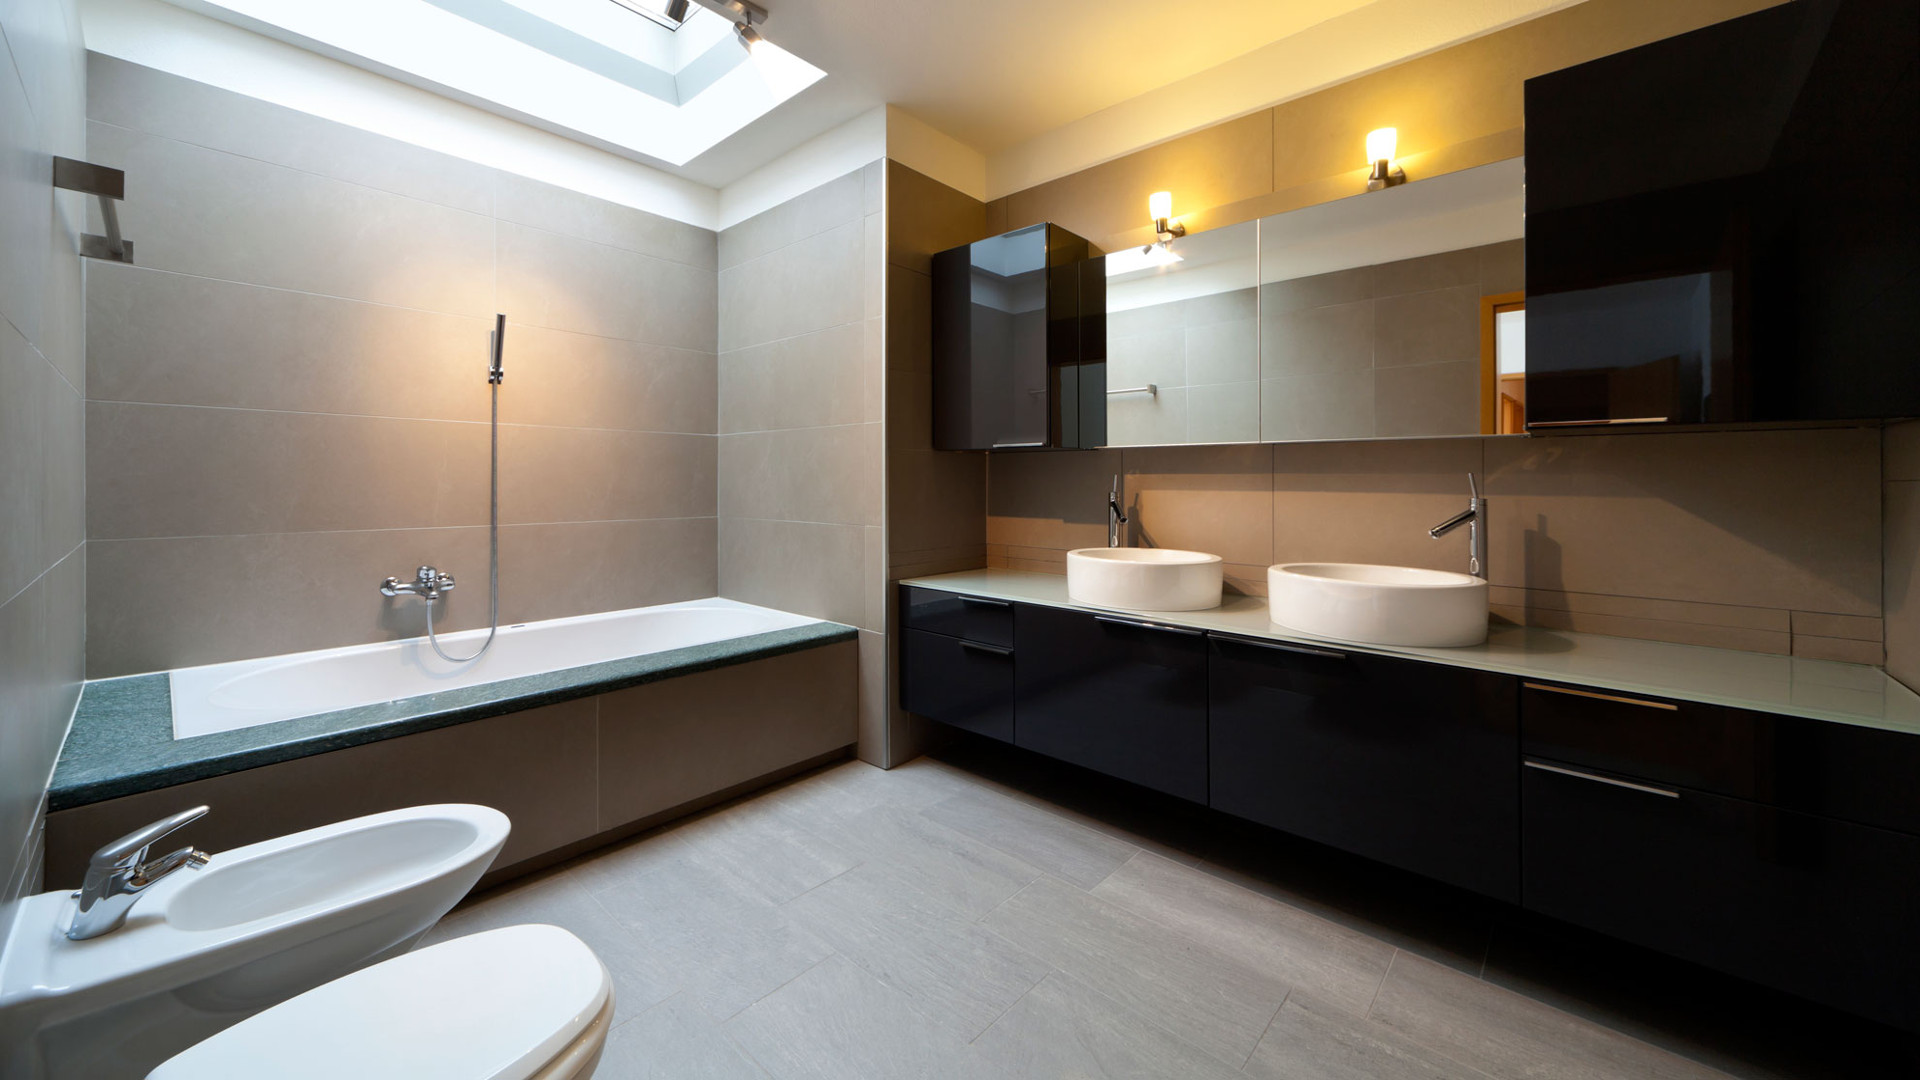 Essex Bathroom Remodeling